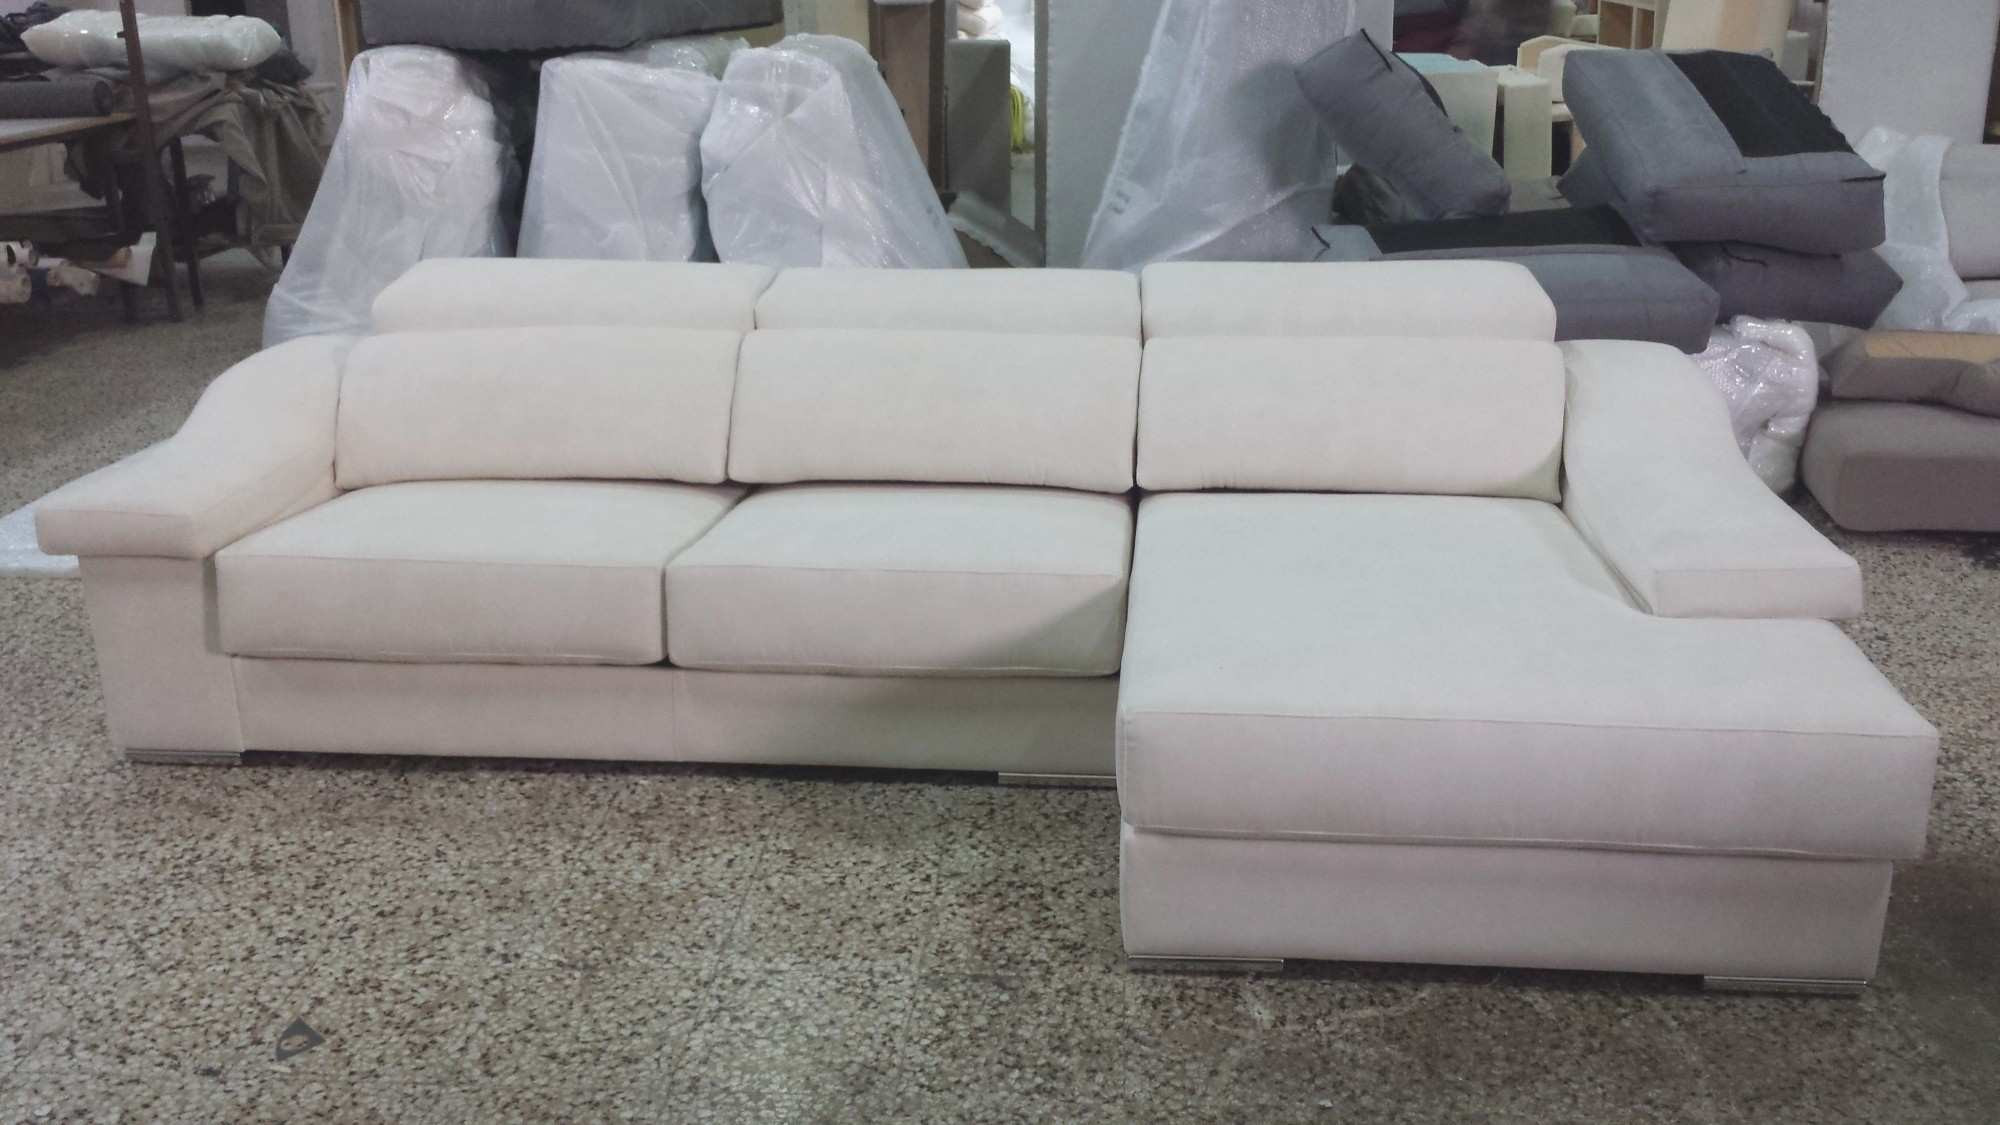 Sofa Chaise Longue Barato Único Nuevo sofas Chaise Longue Baratos Barcelona Of 49  Mejor sofa Chaise Longue Barato